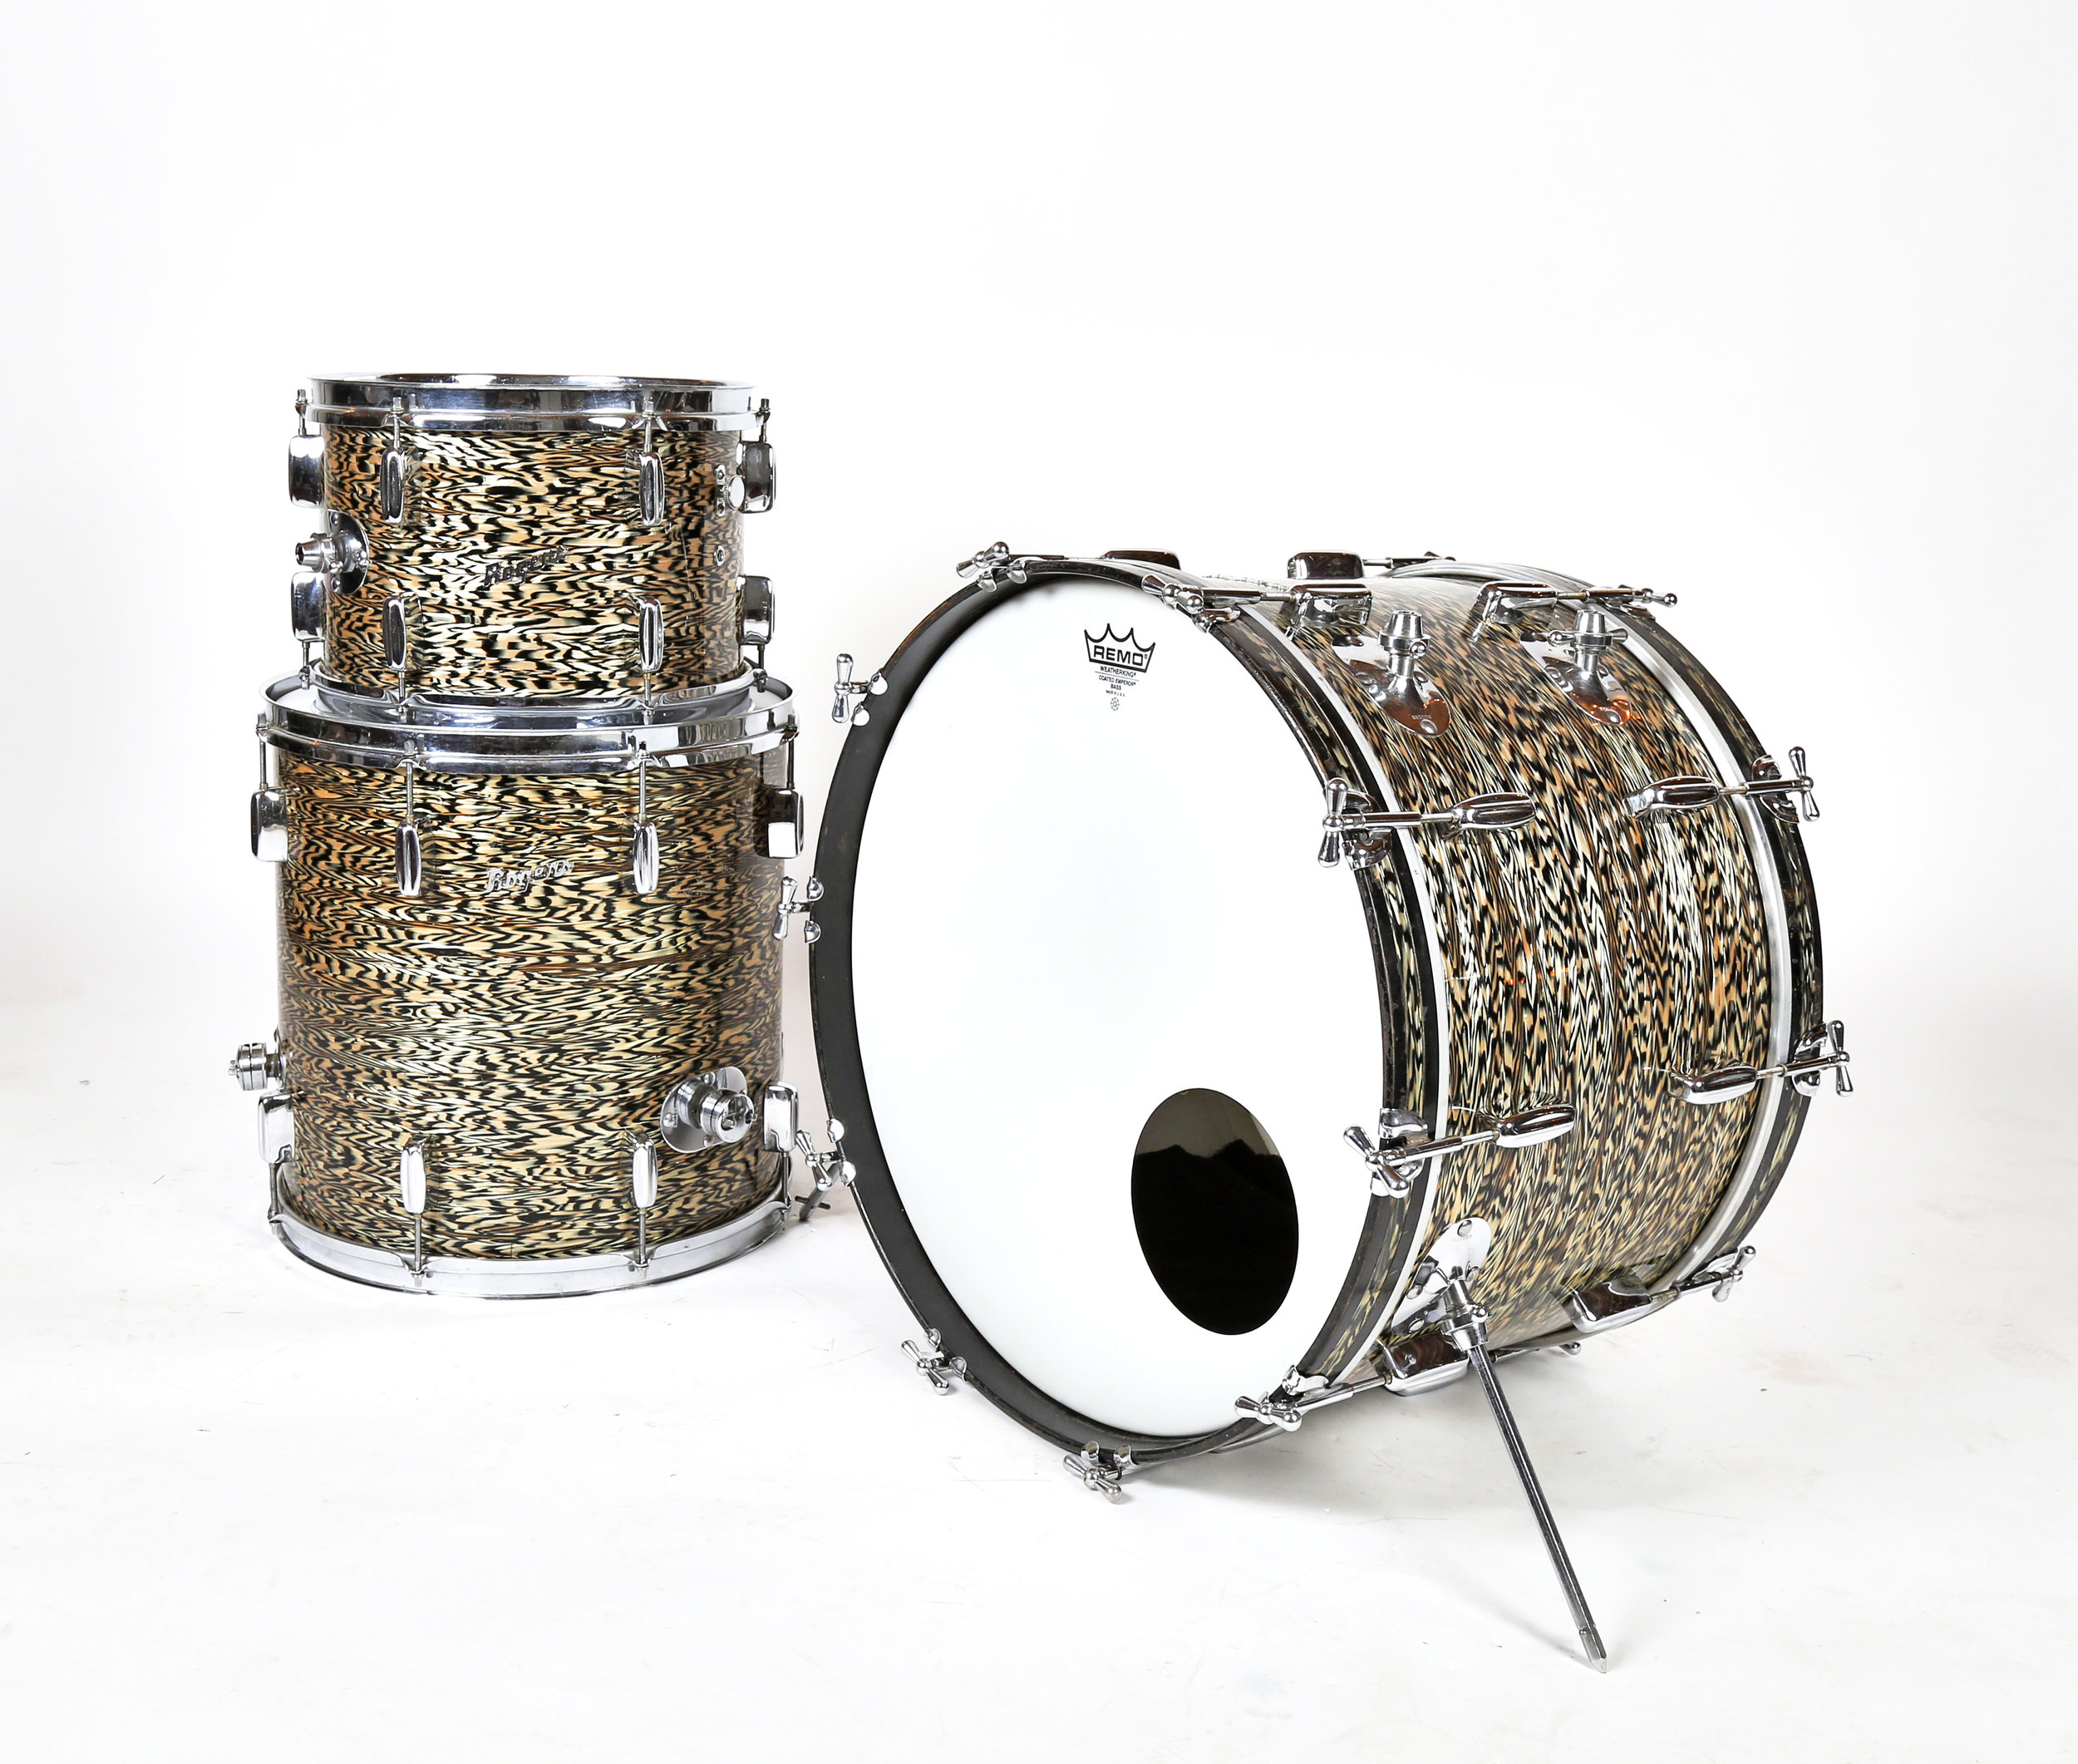 Dorio Vintage Drum_Rodgers Black On_1846.jpg